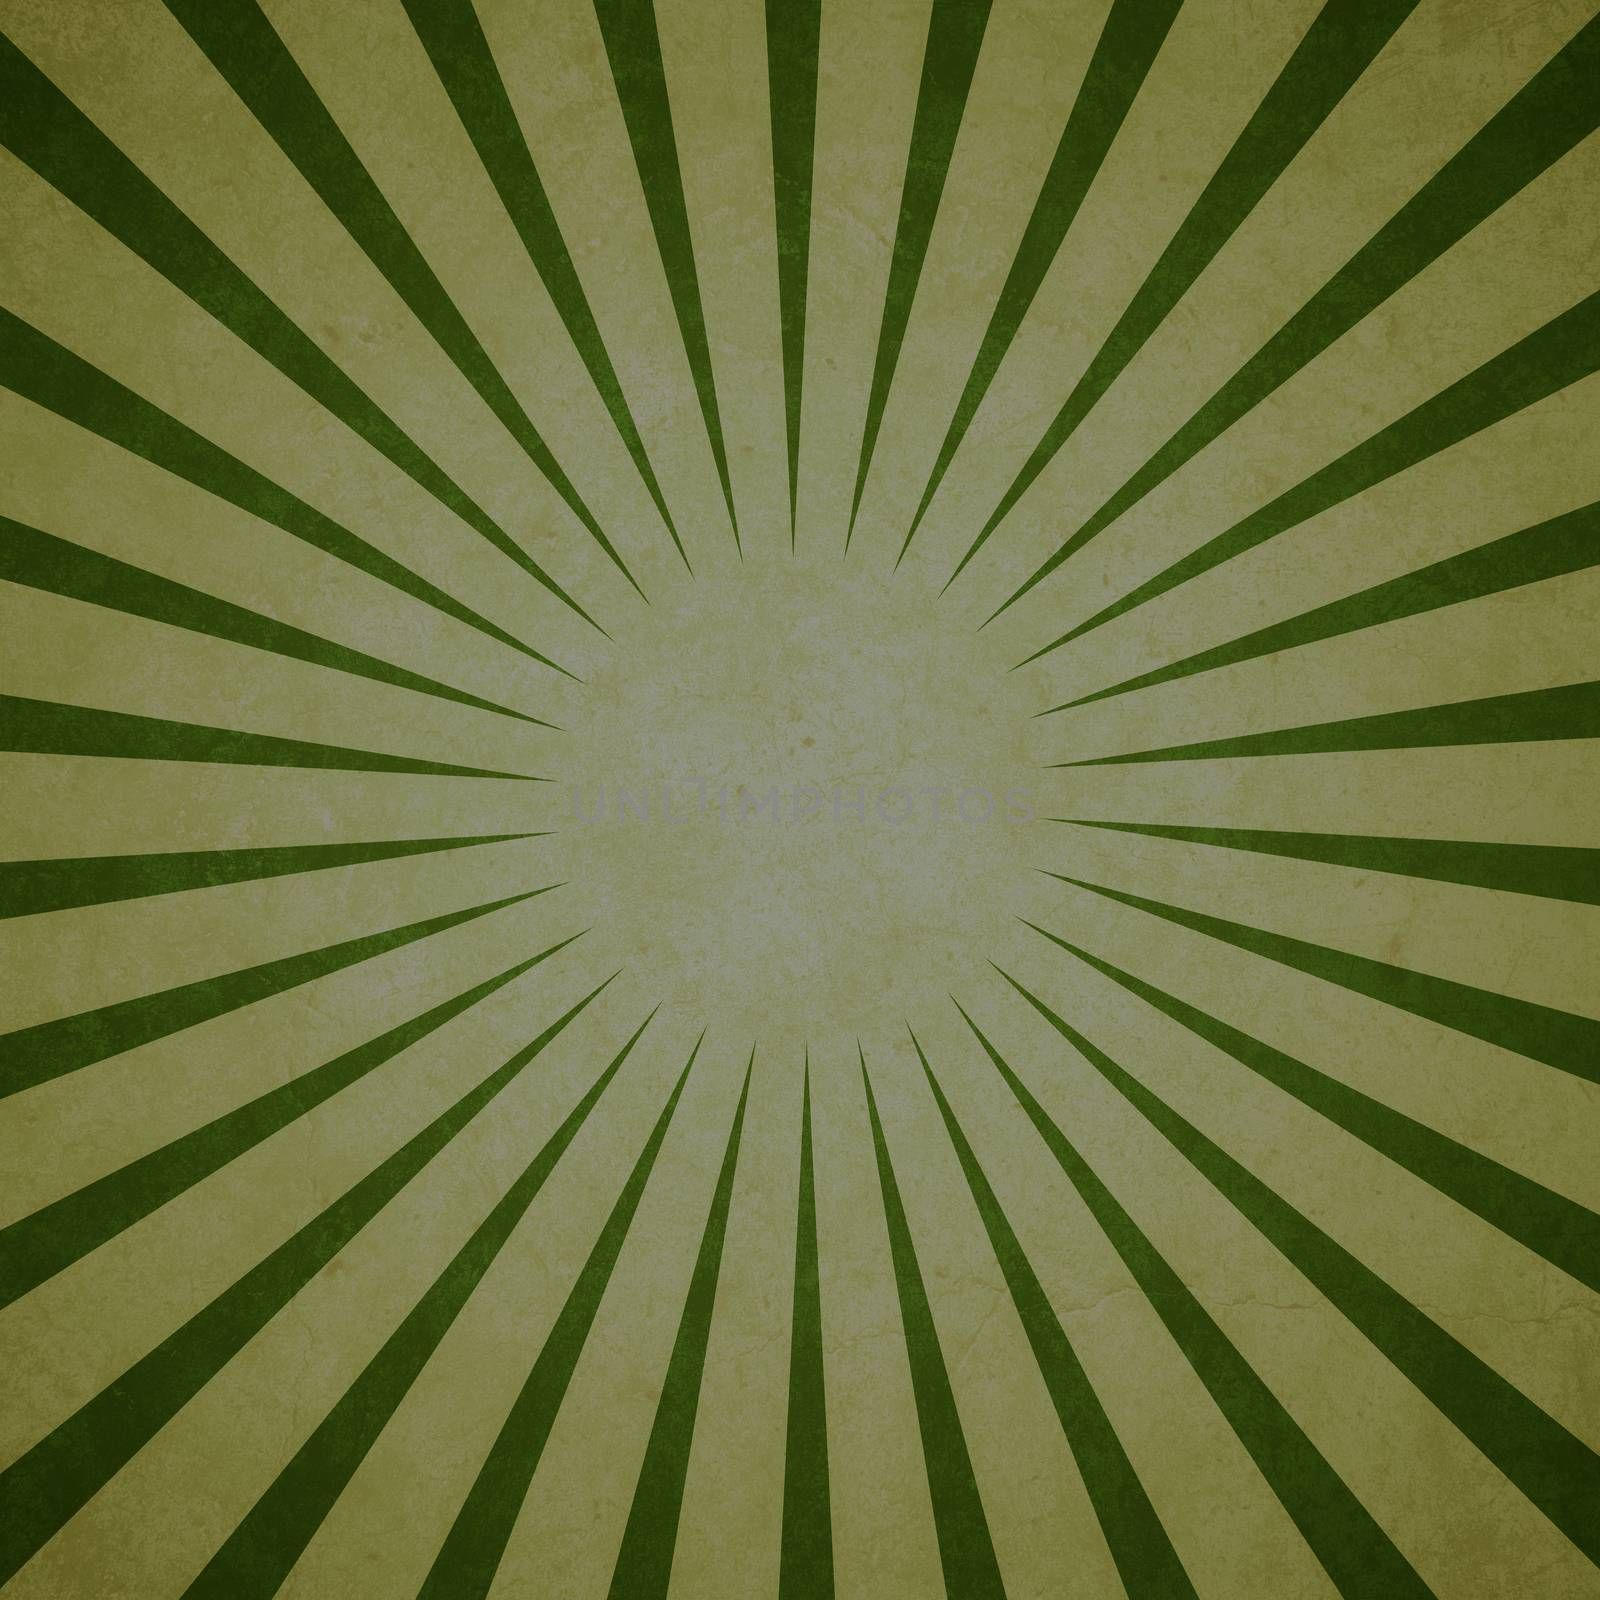 sunshine abstract background